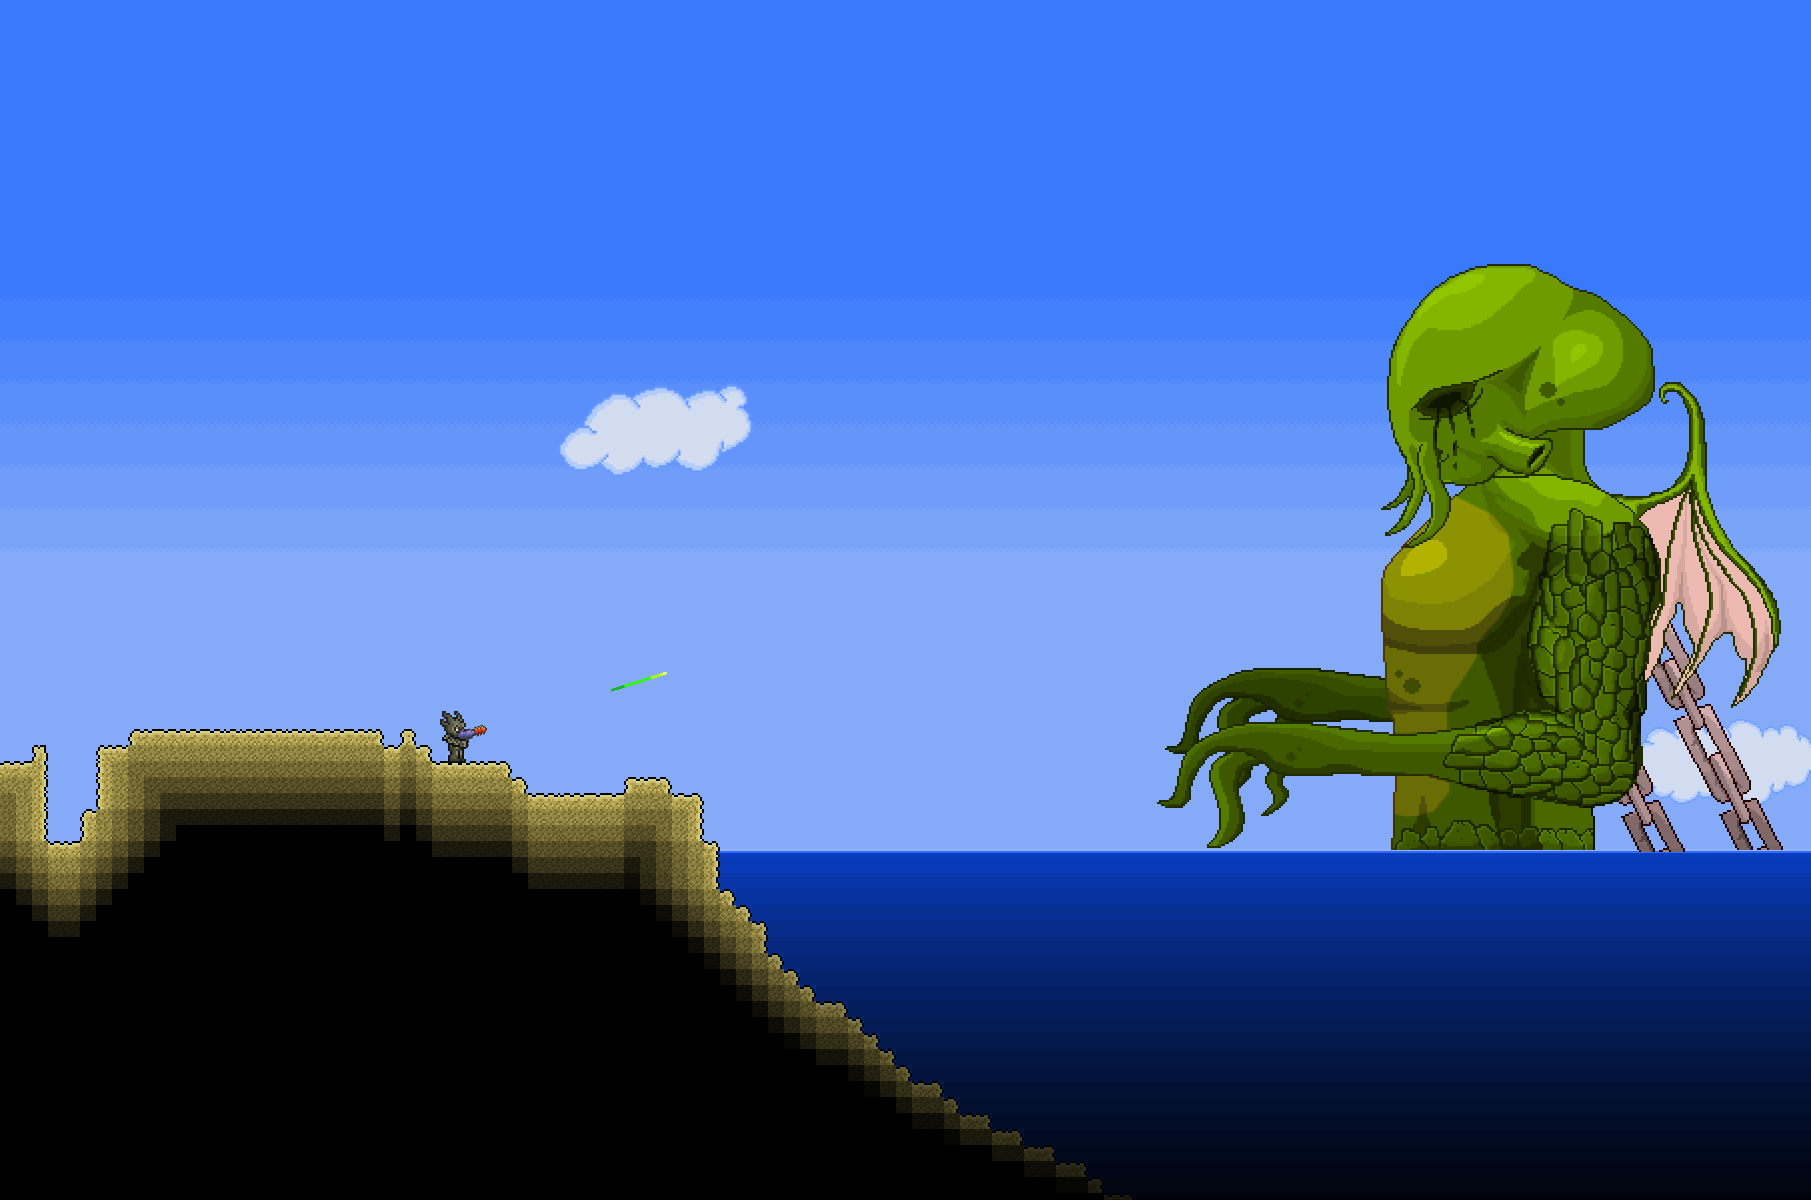 Cthulhu | Terraria Wiki | FANDOM powered by Wikia